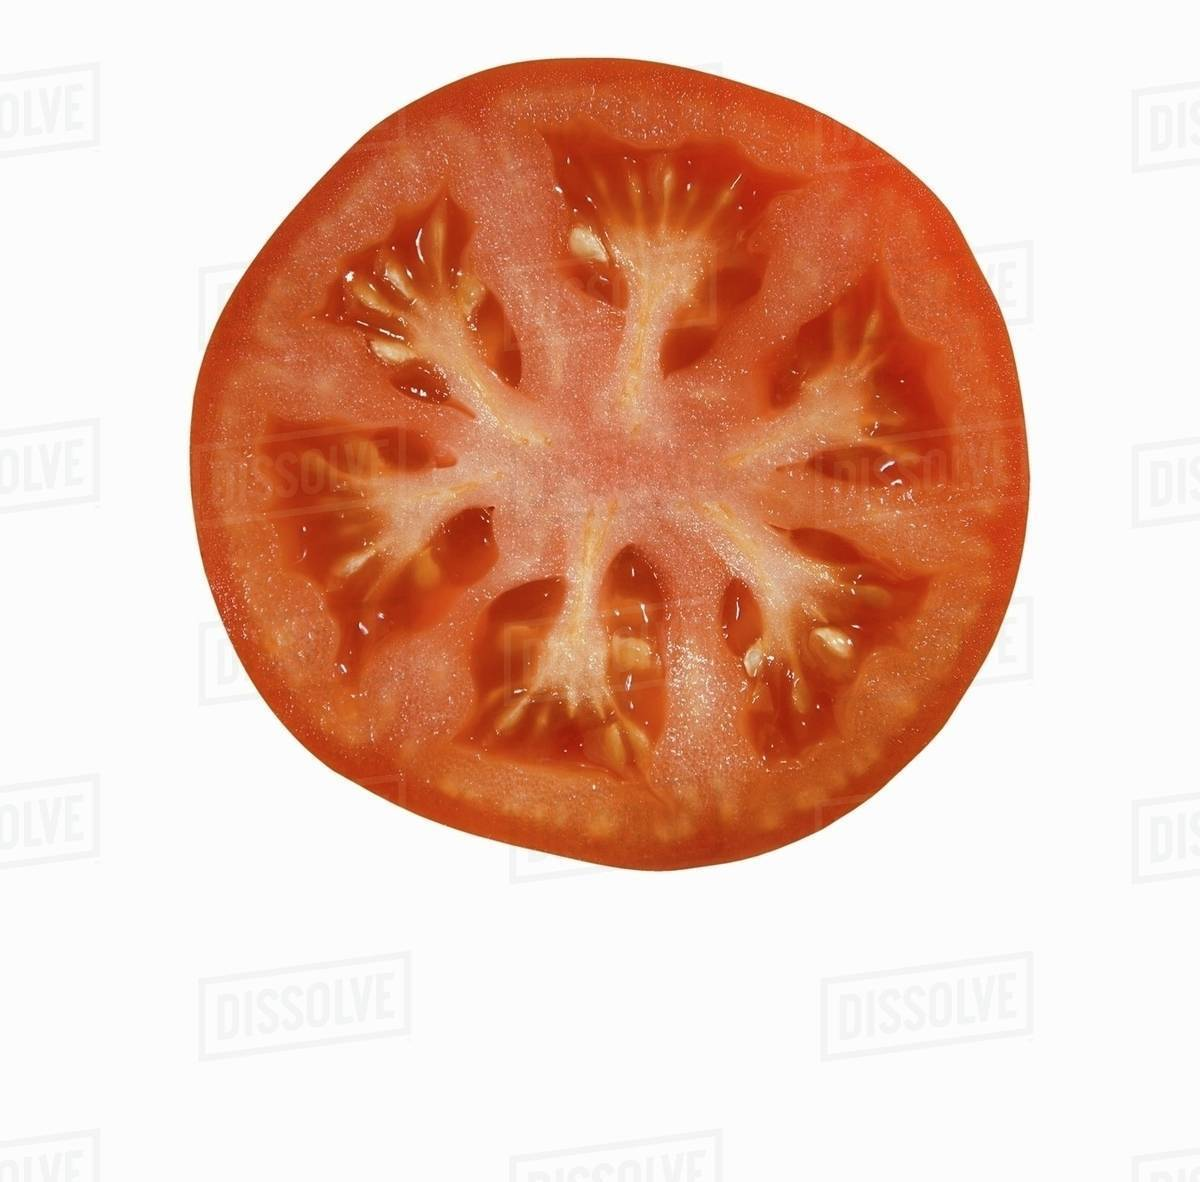 tomato slice on white background stock photo dissolve